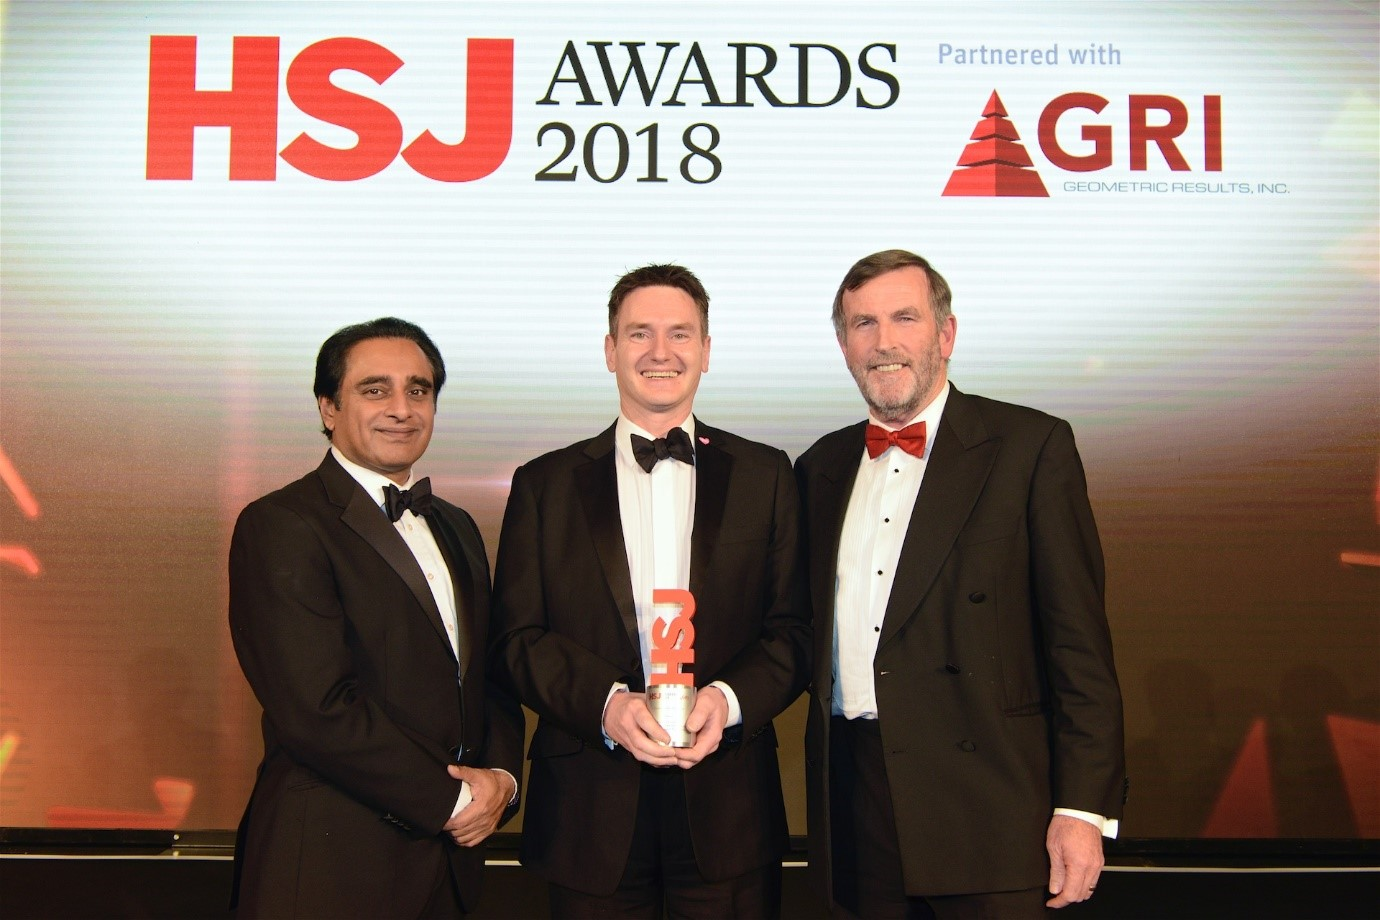 Anthony receives his HSJ award